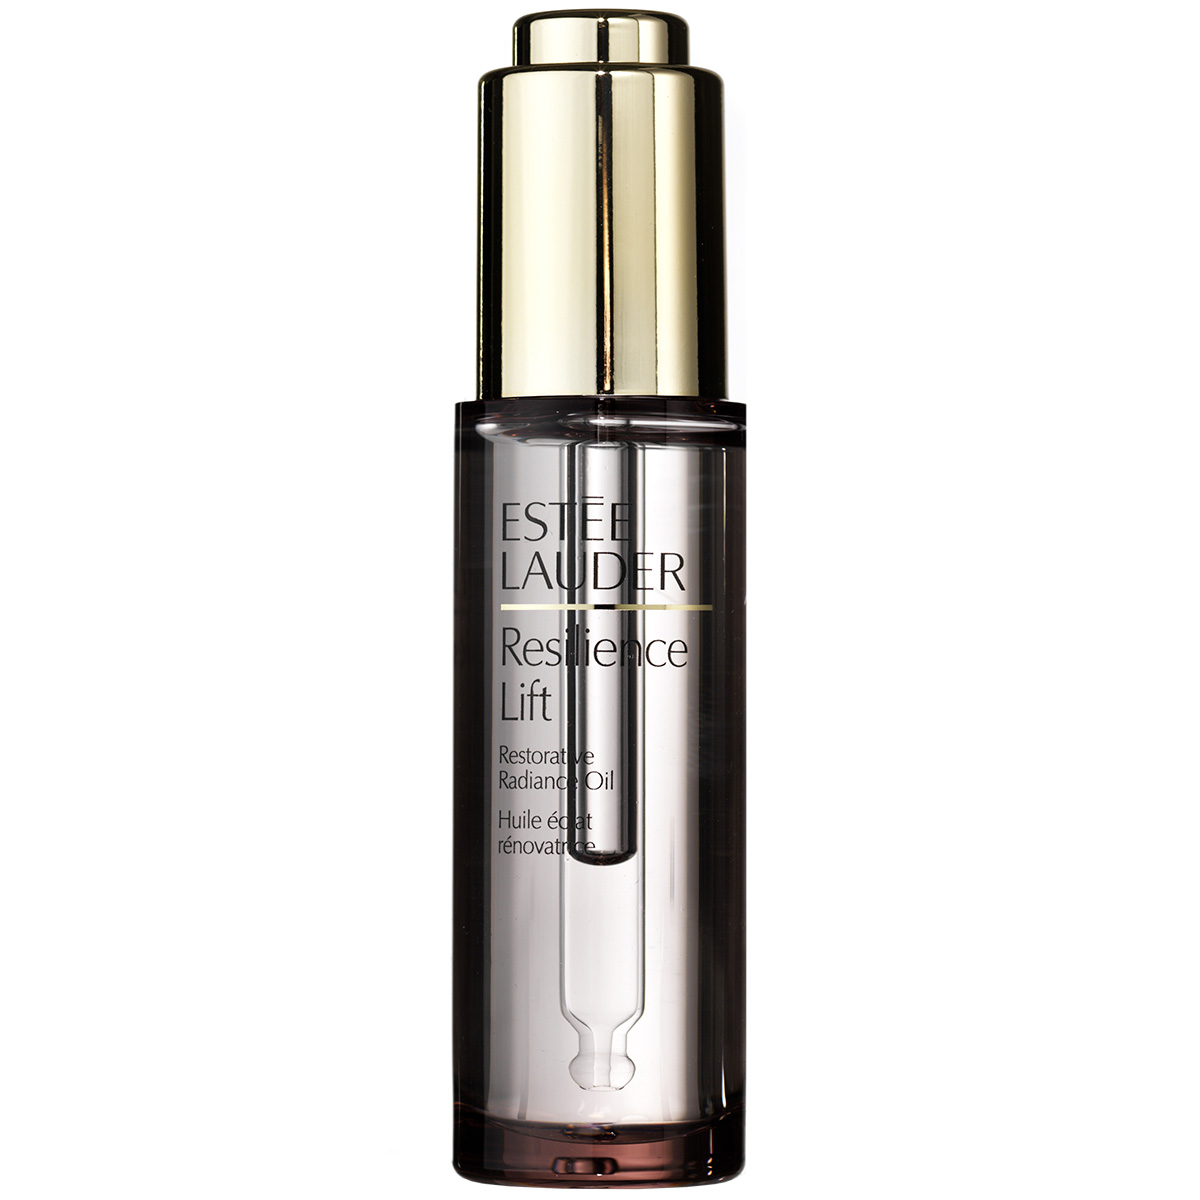 Image of   Estée Lauder Resilience Lift Restorative Radiance Oil - 30 ml